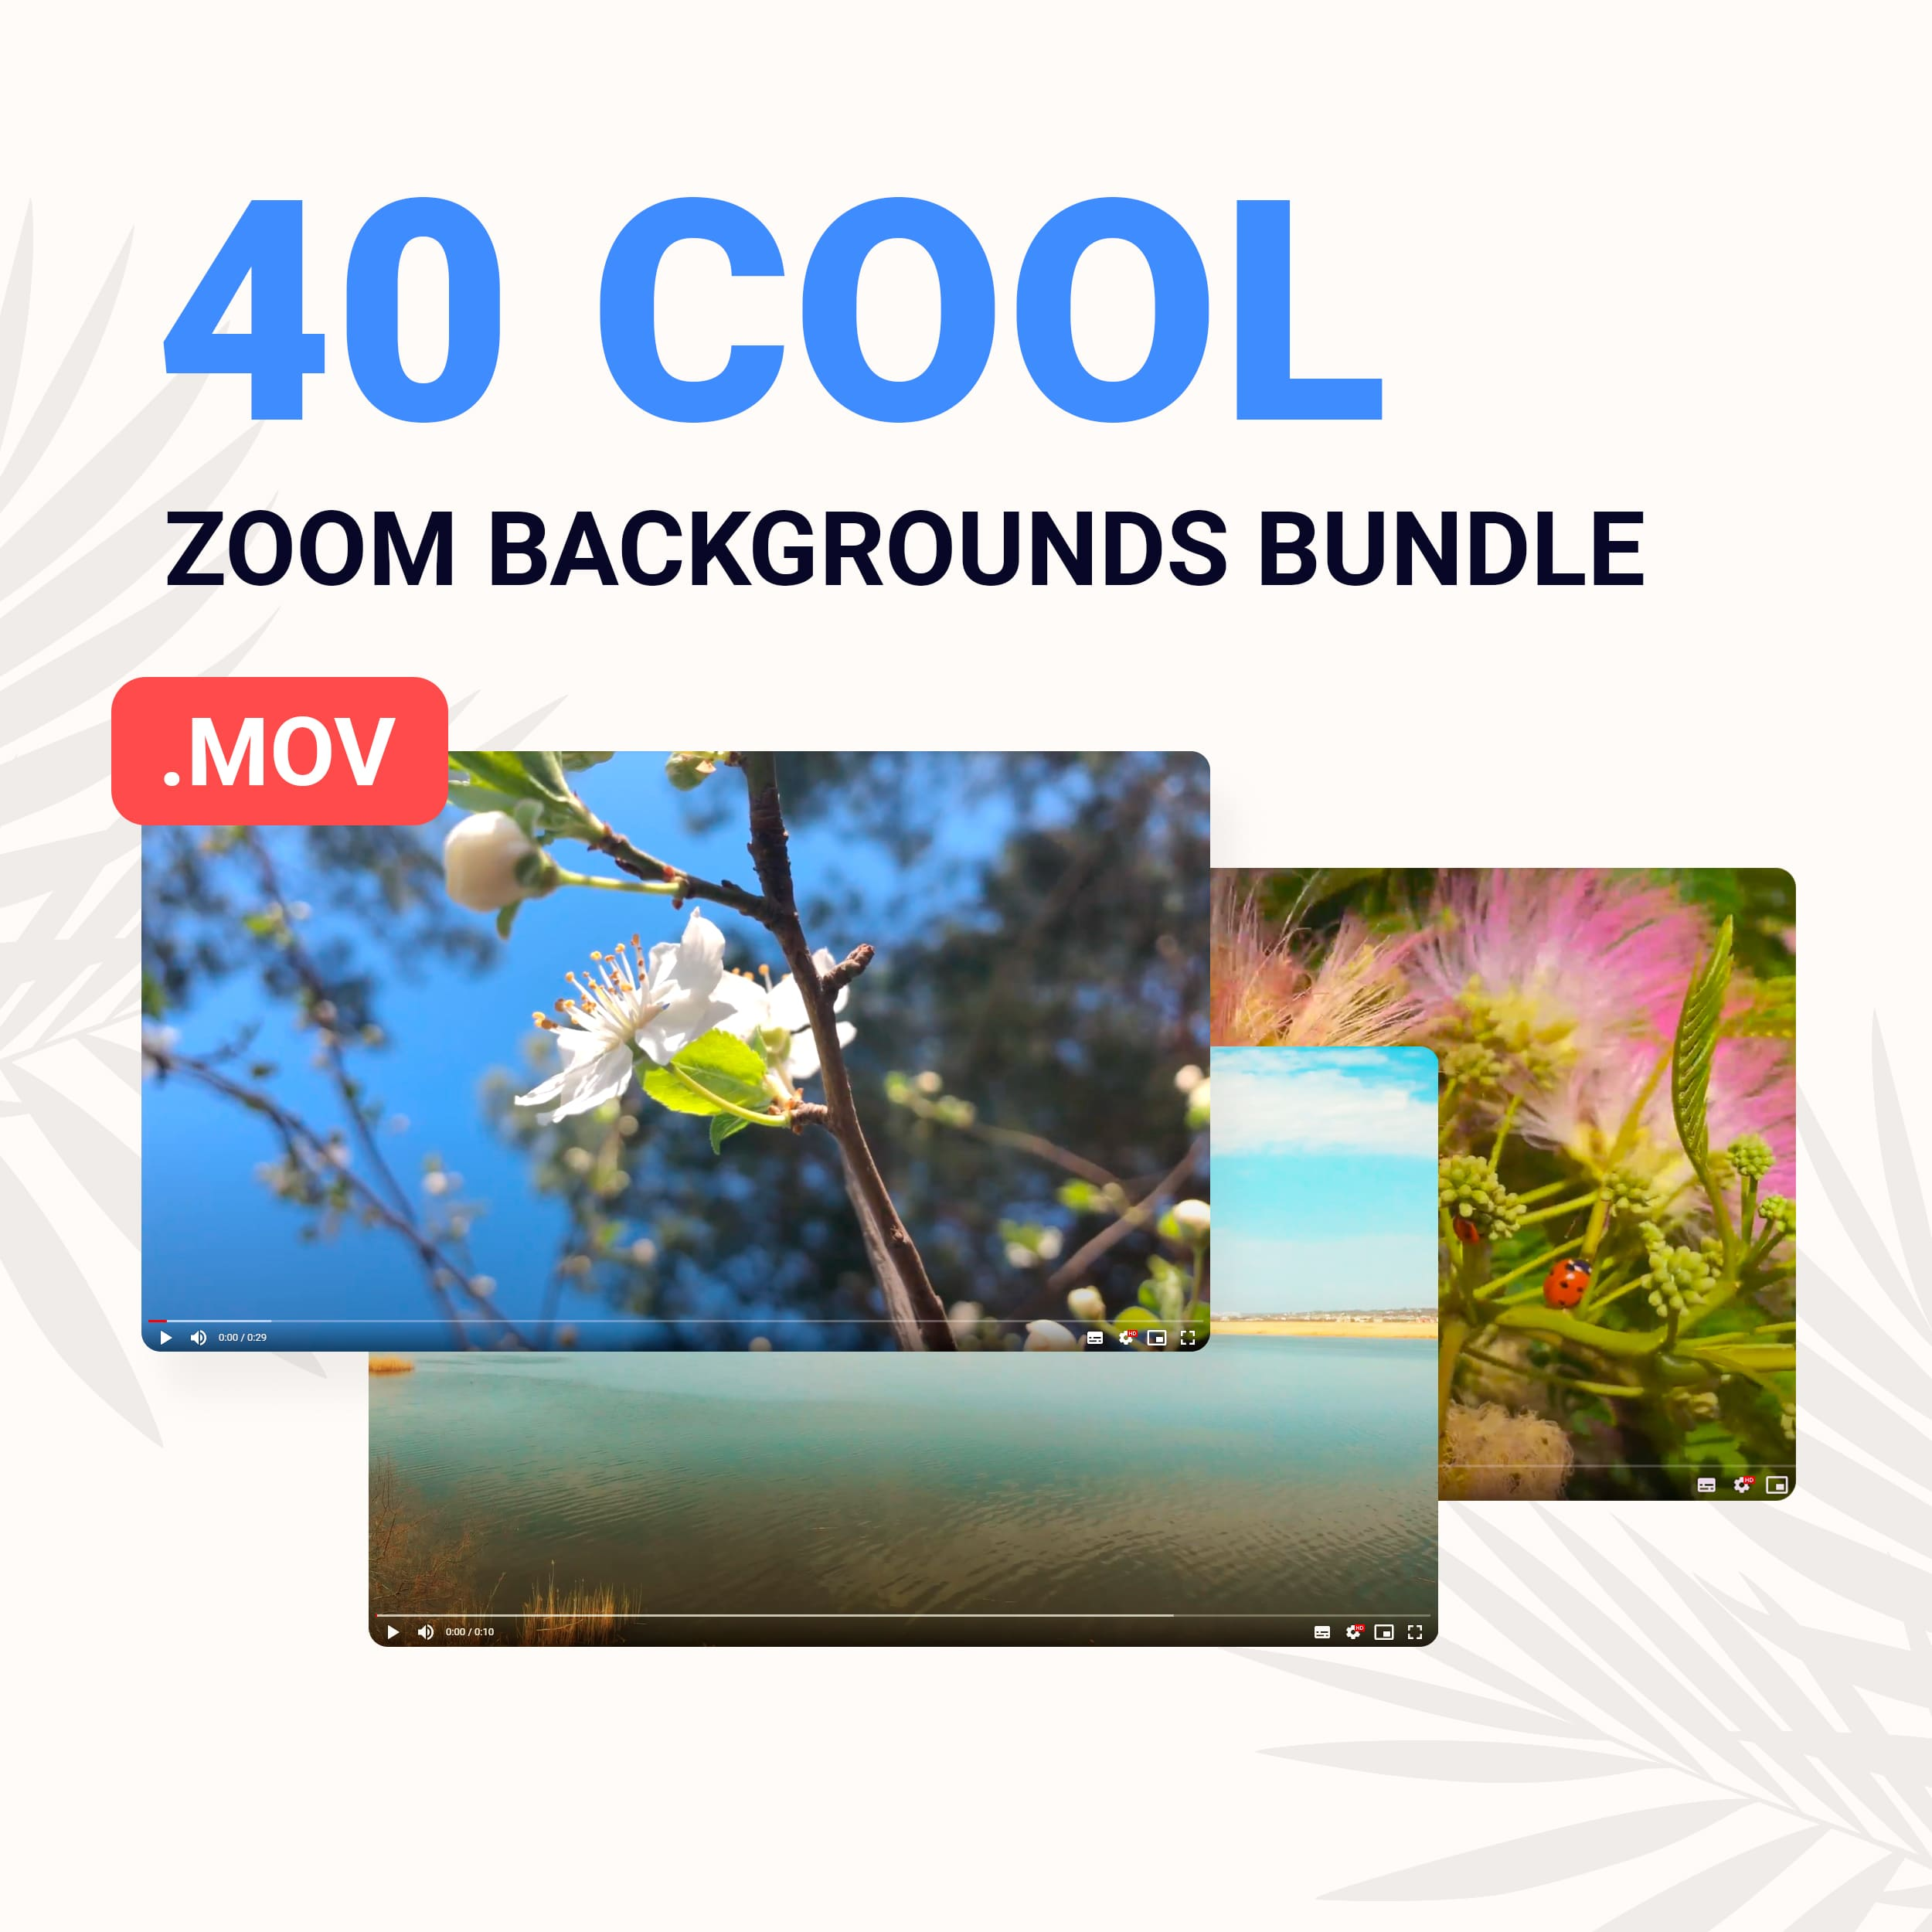 40 Cool Zoom Backgrounds Bundle previews.